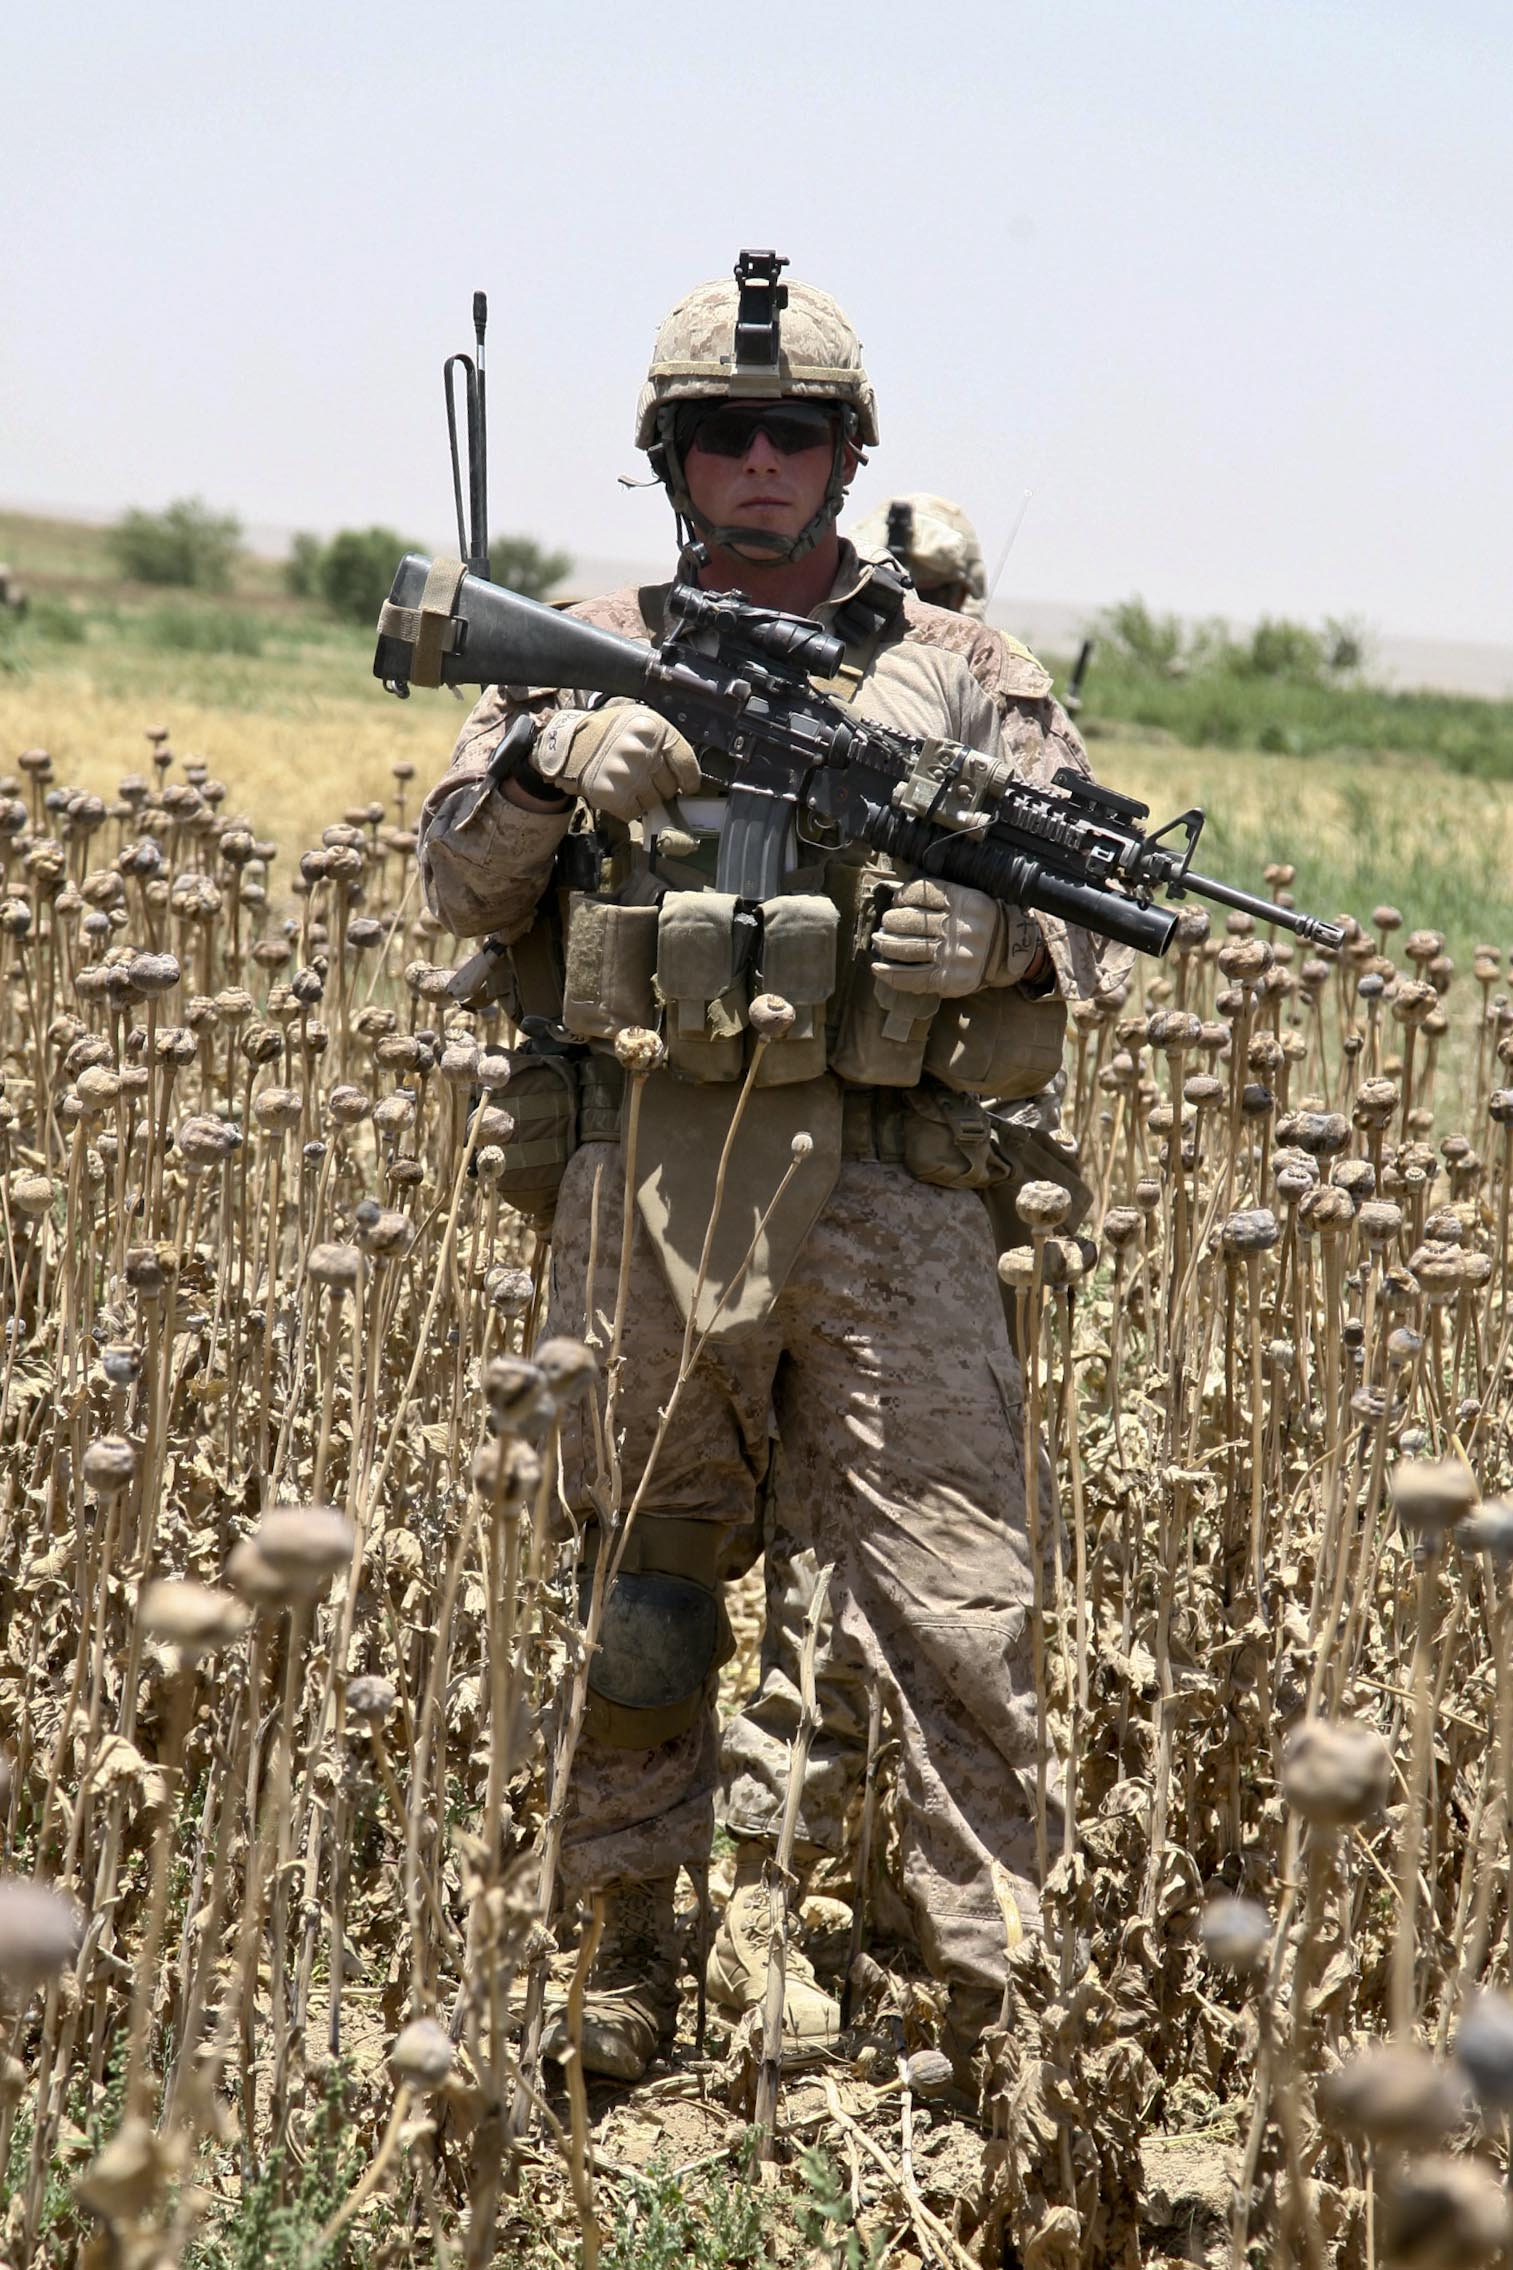 U.S. Occupation Leads to All Time High Afghan Opium Production opium field 8